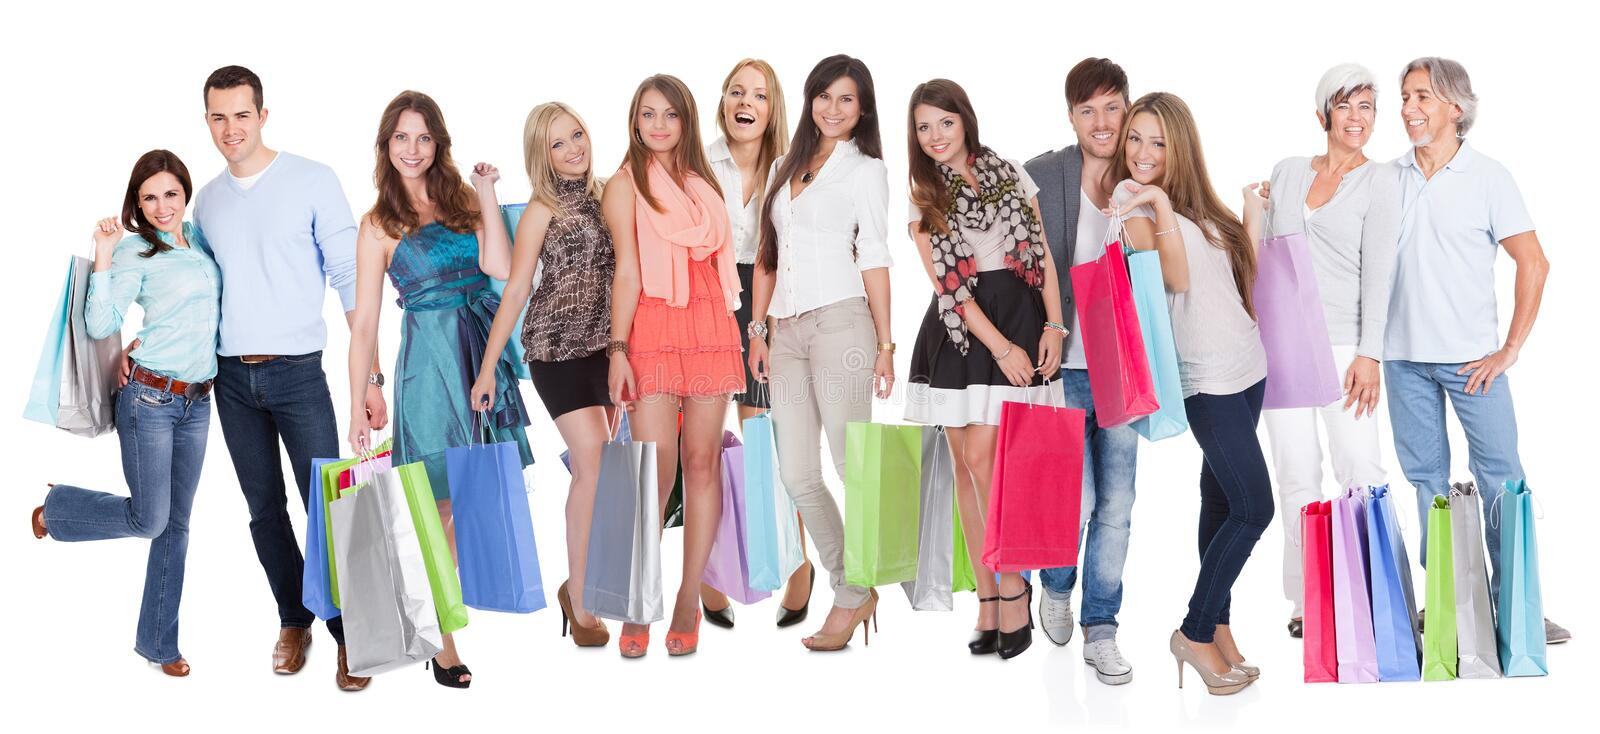 Large group of people with shopping bags royalty free stock photos